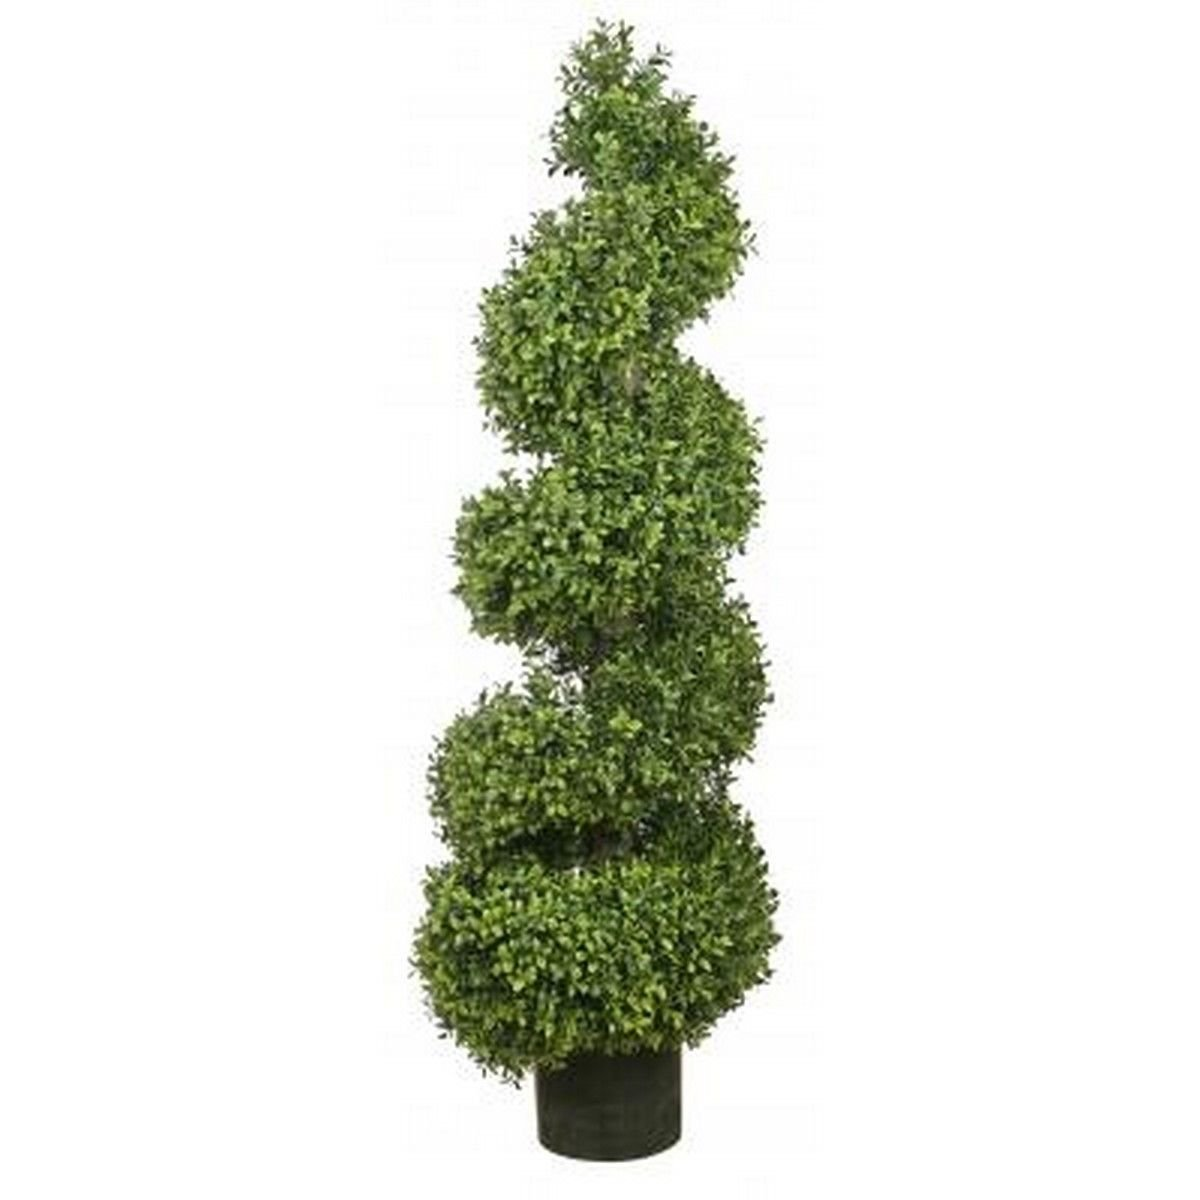 One 56 Inch Outdoor Artificial Boxwood Spiral Topiary Tree Potted Uv Rated Plant by Silk Tree Warehouse